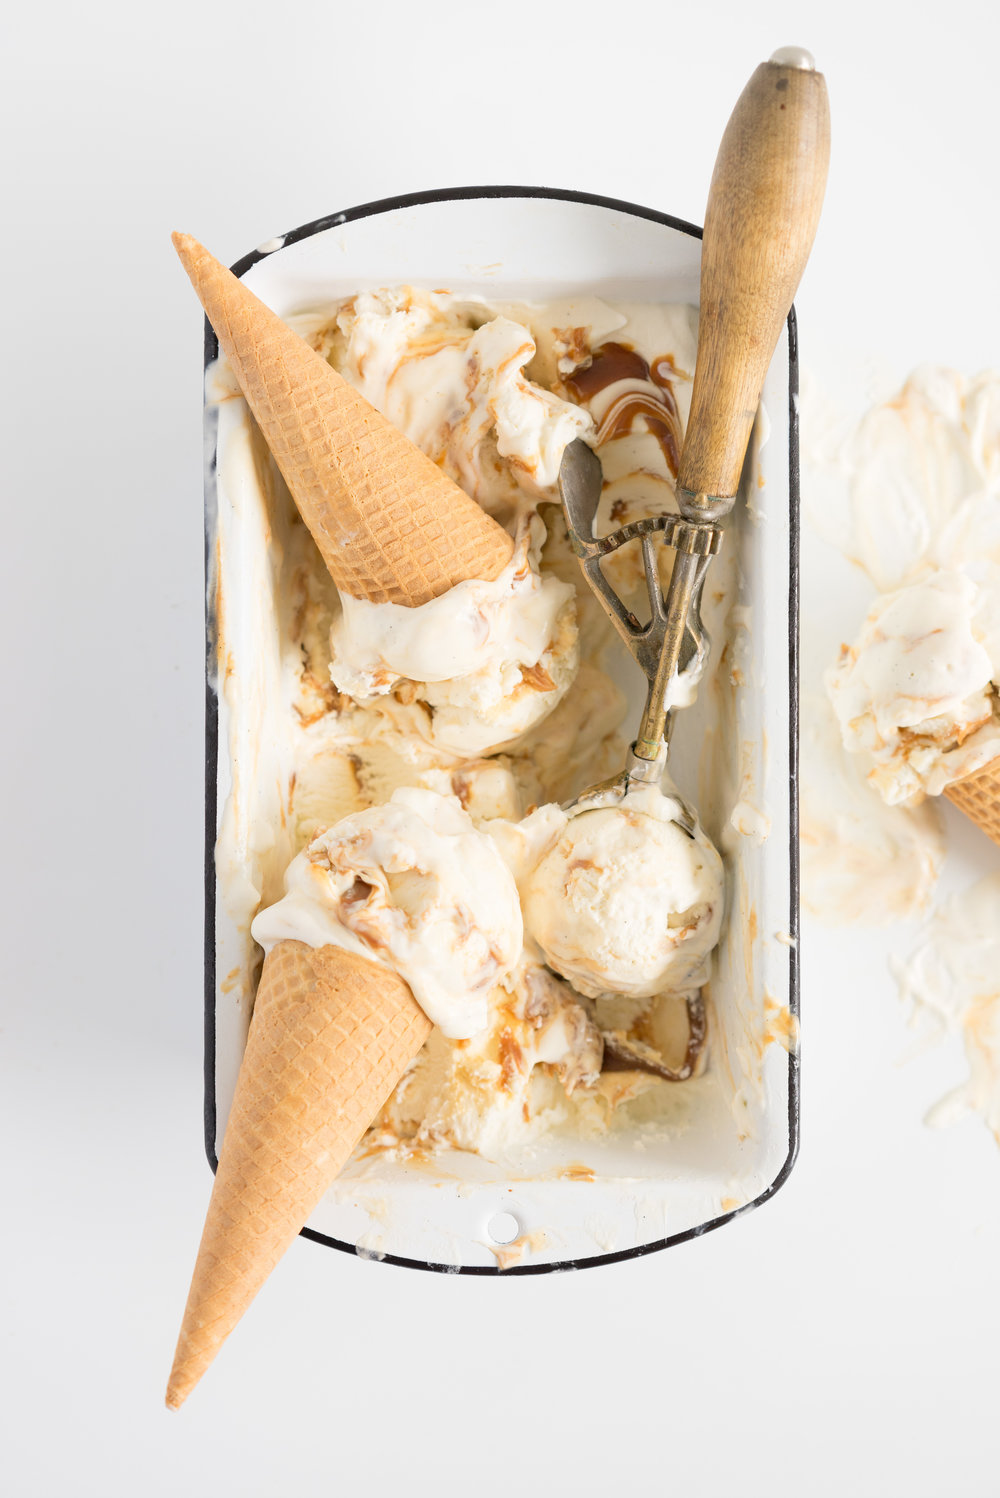 Salted Caramel No churn Ice Cream - a fancy wee twist on everyone's favourite no-churn recipe